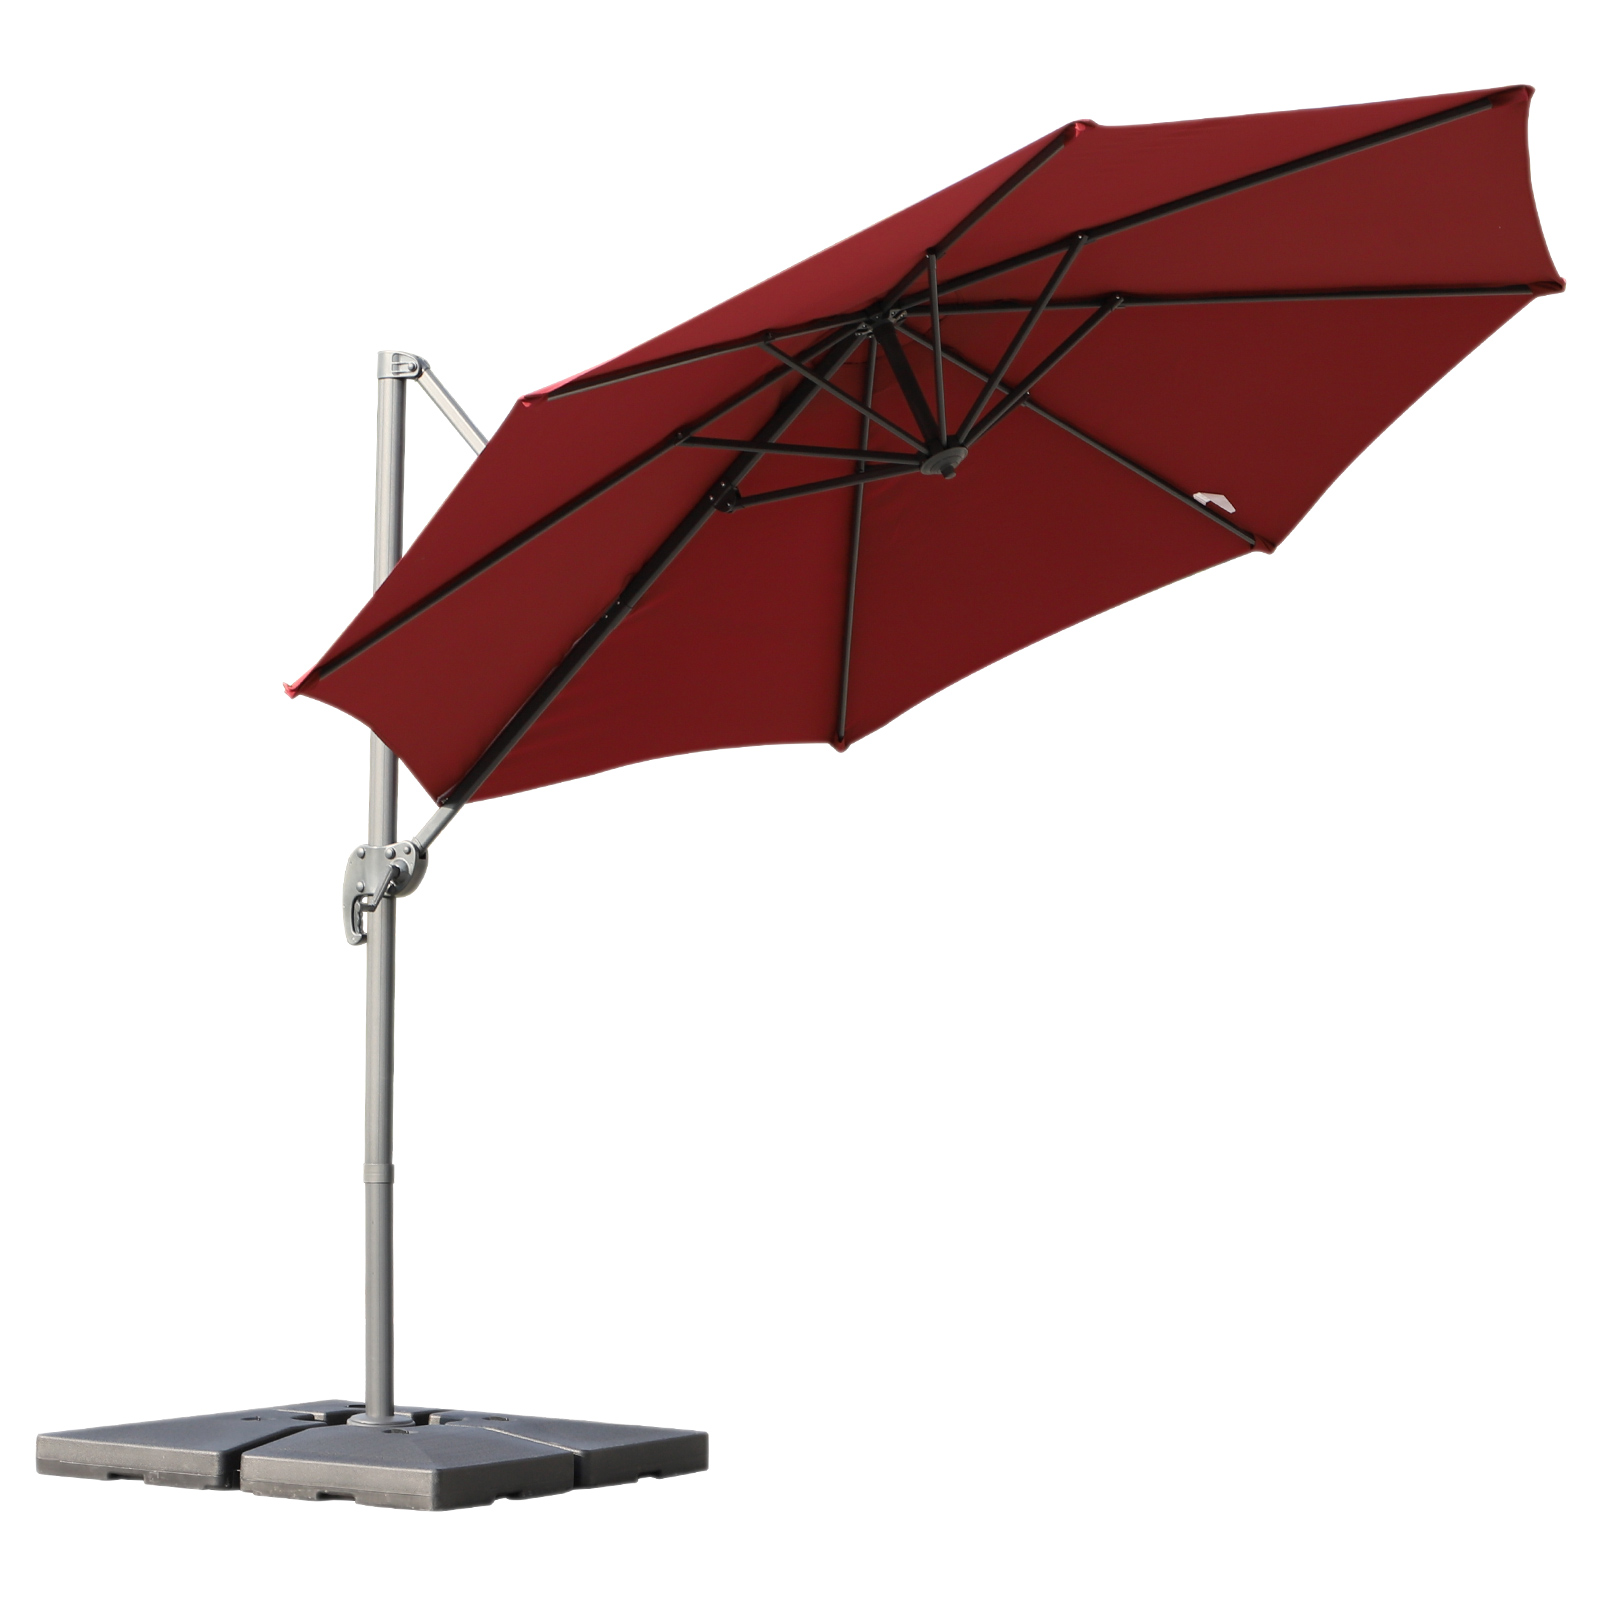 Outsunny Sunshade Decentralised Angle Adjustable 360 Rotating Garden Polyester Φ294x248cm Red